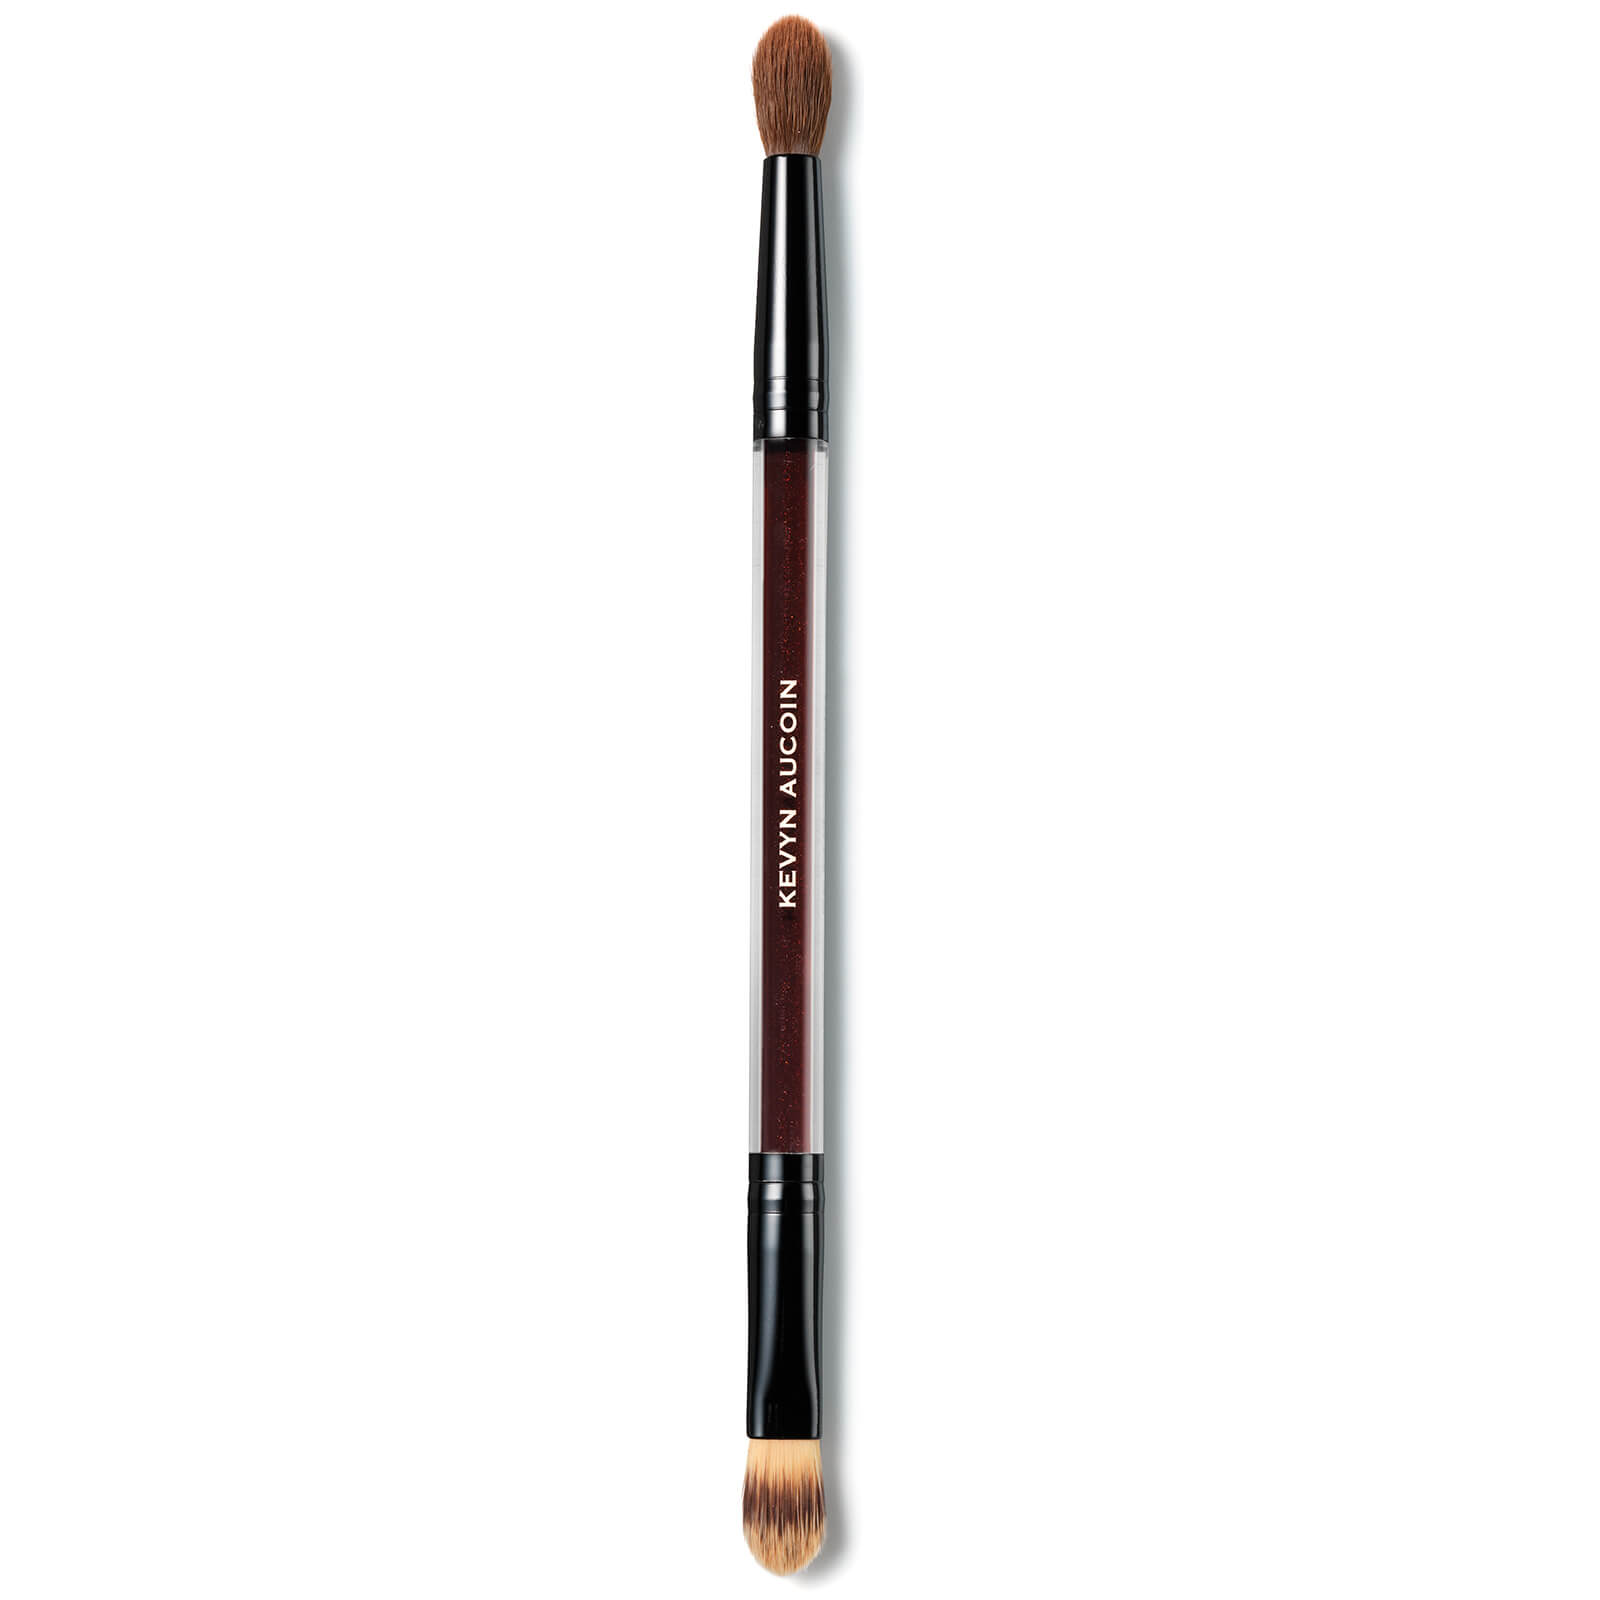 Kevyn Aucoin The Duet Concealer Brush